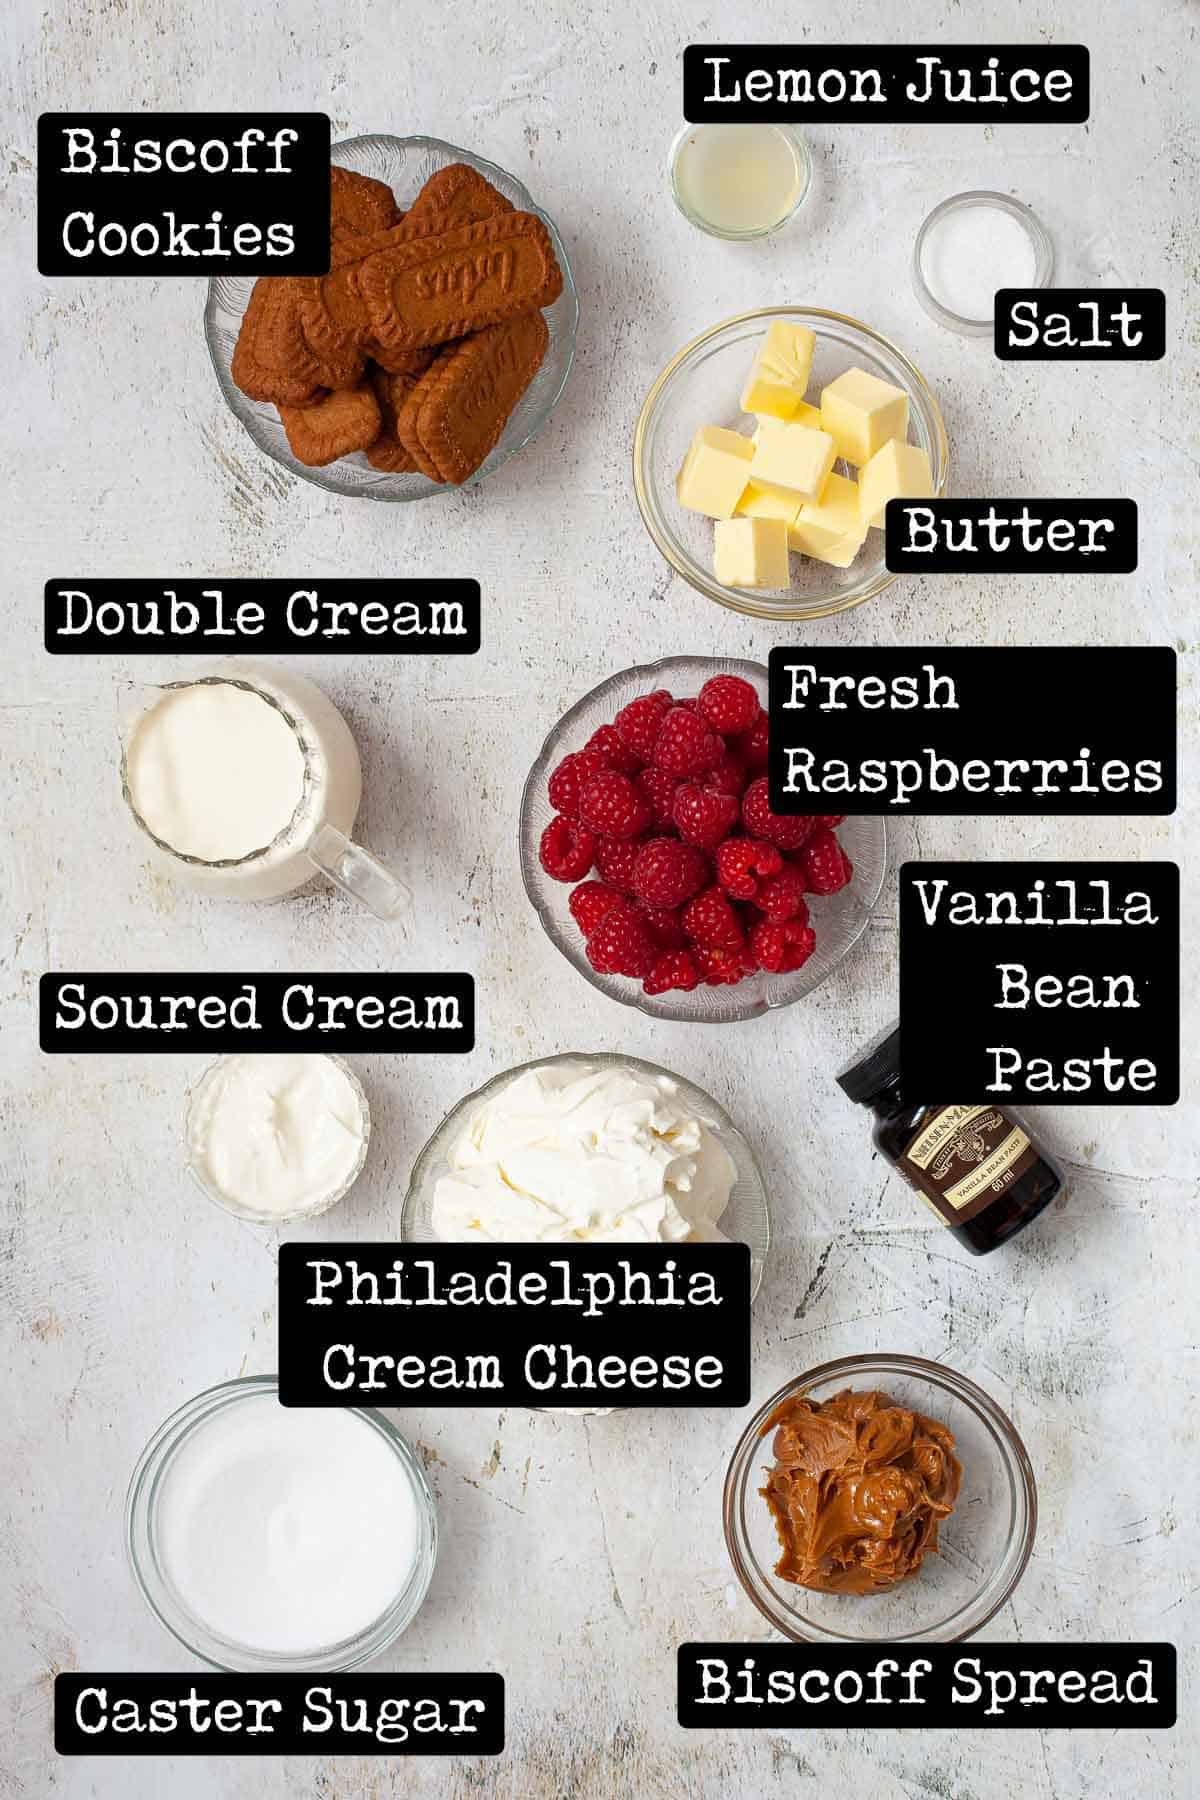 Ingredients in bowls with text overlay for a recipe using cookies, cream cheese and raspberries